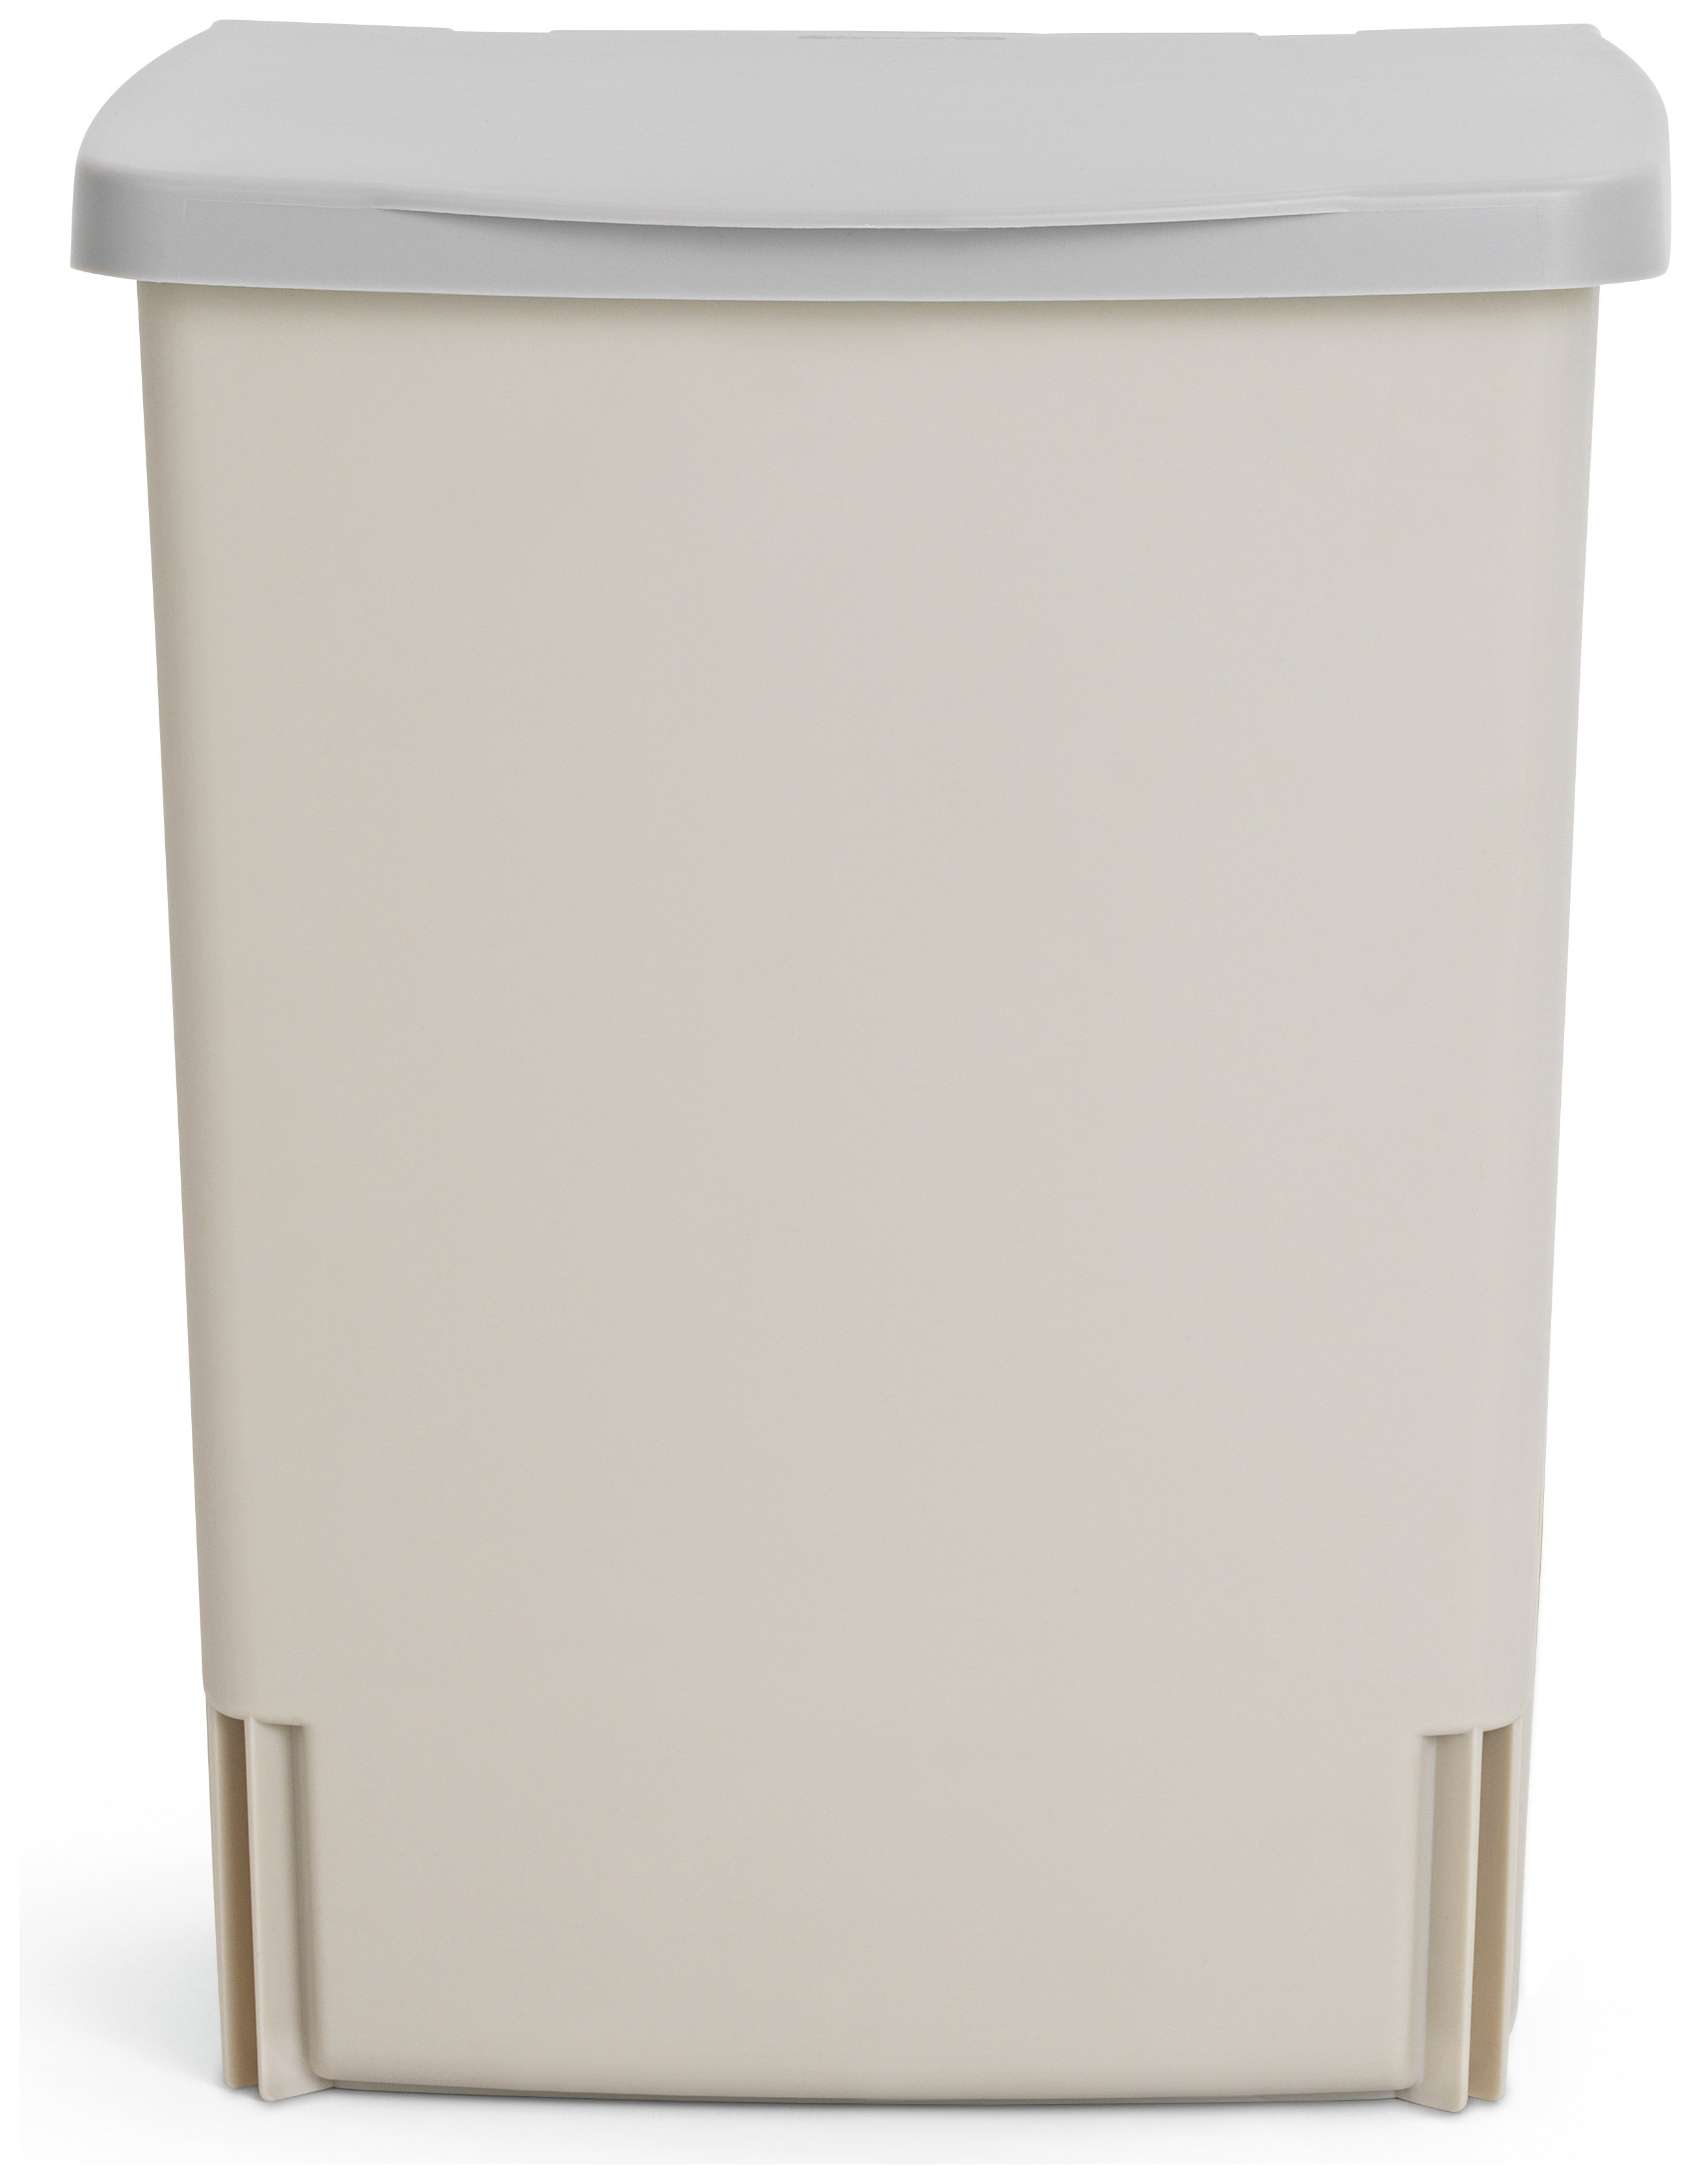 Image of Brabantia - 10L Storage / Waste Binny - Grey